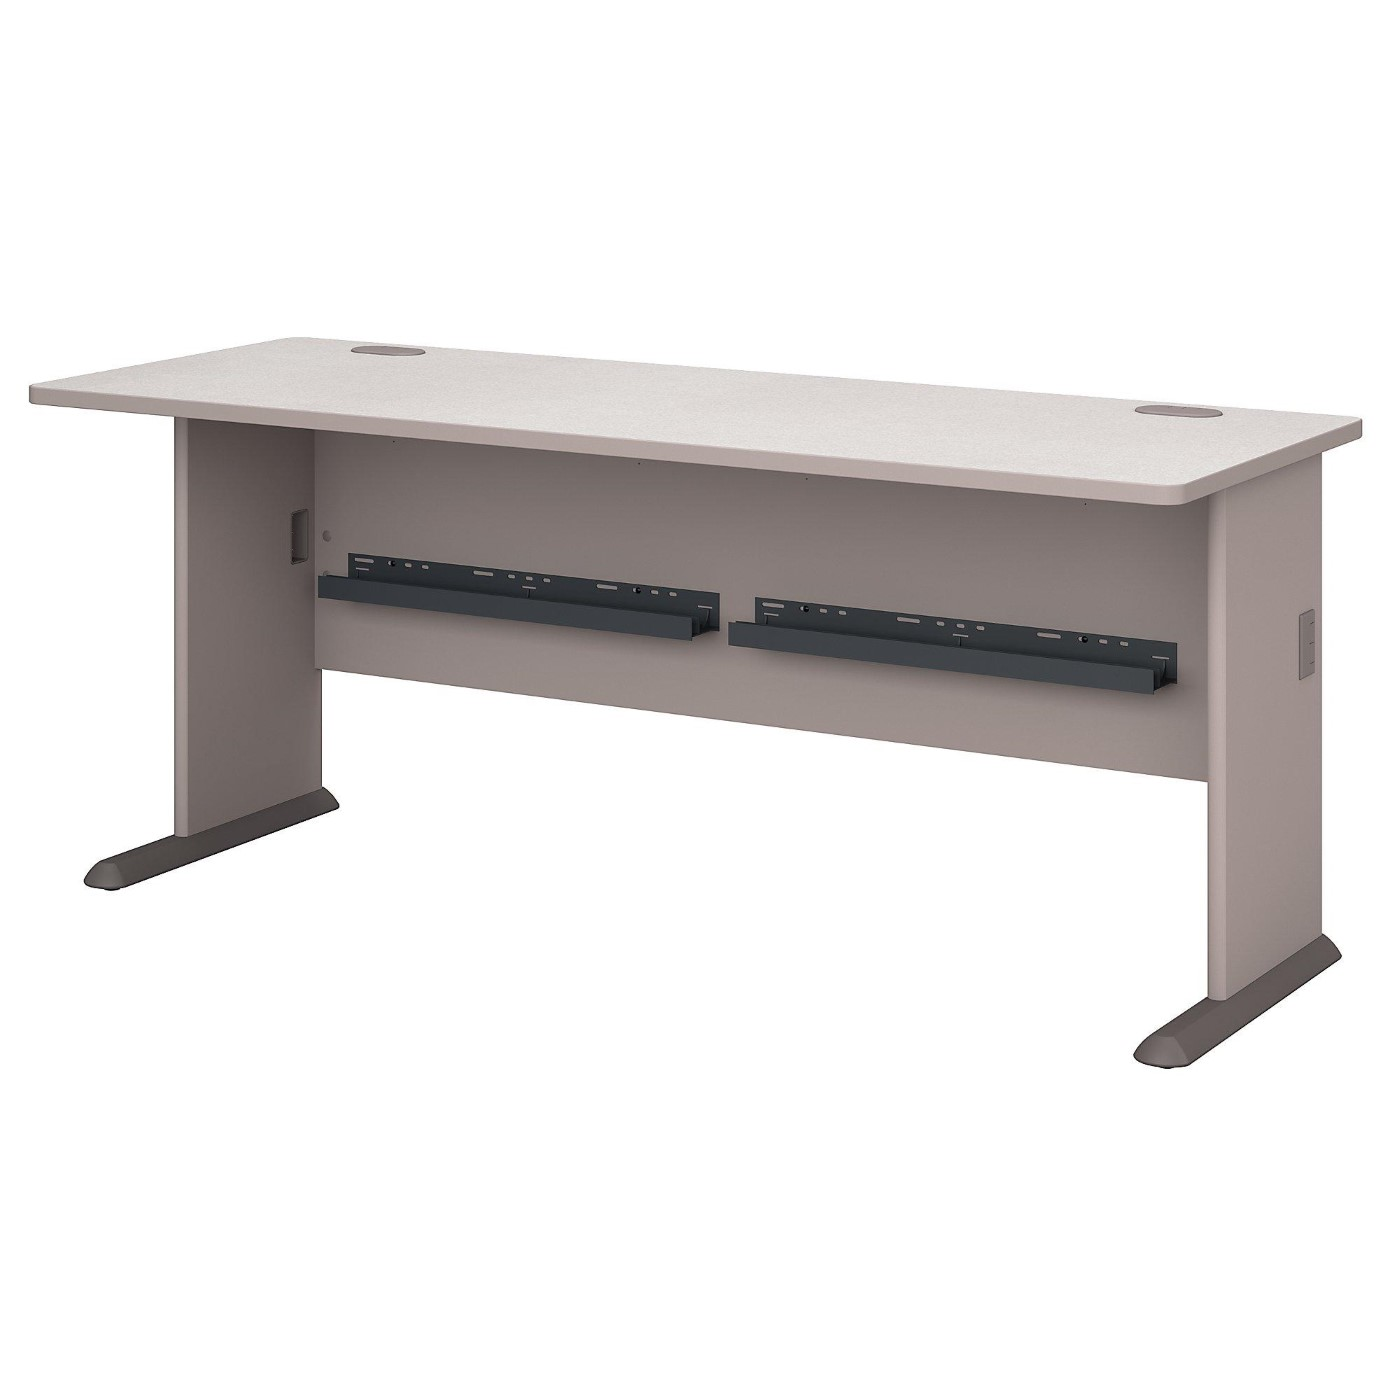 BUSH BUSINESS FURNITURE SERIES A 72W DESK. FREE SHIPPING.